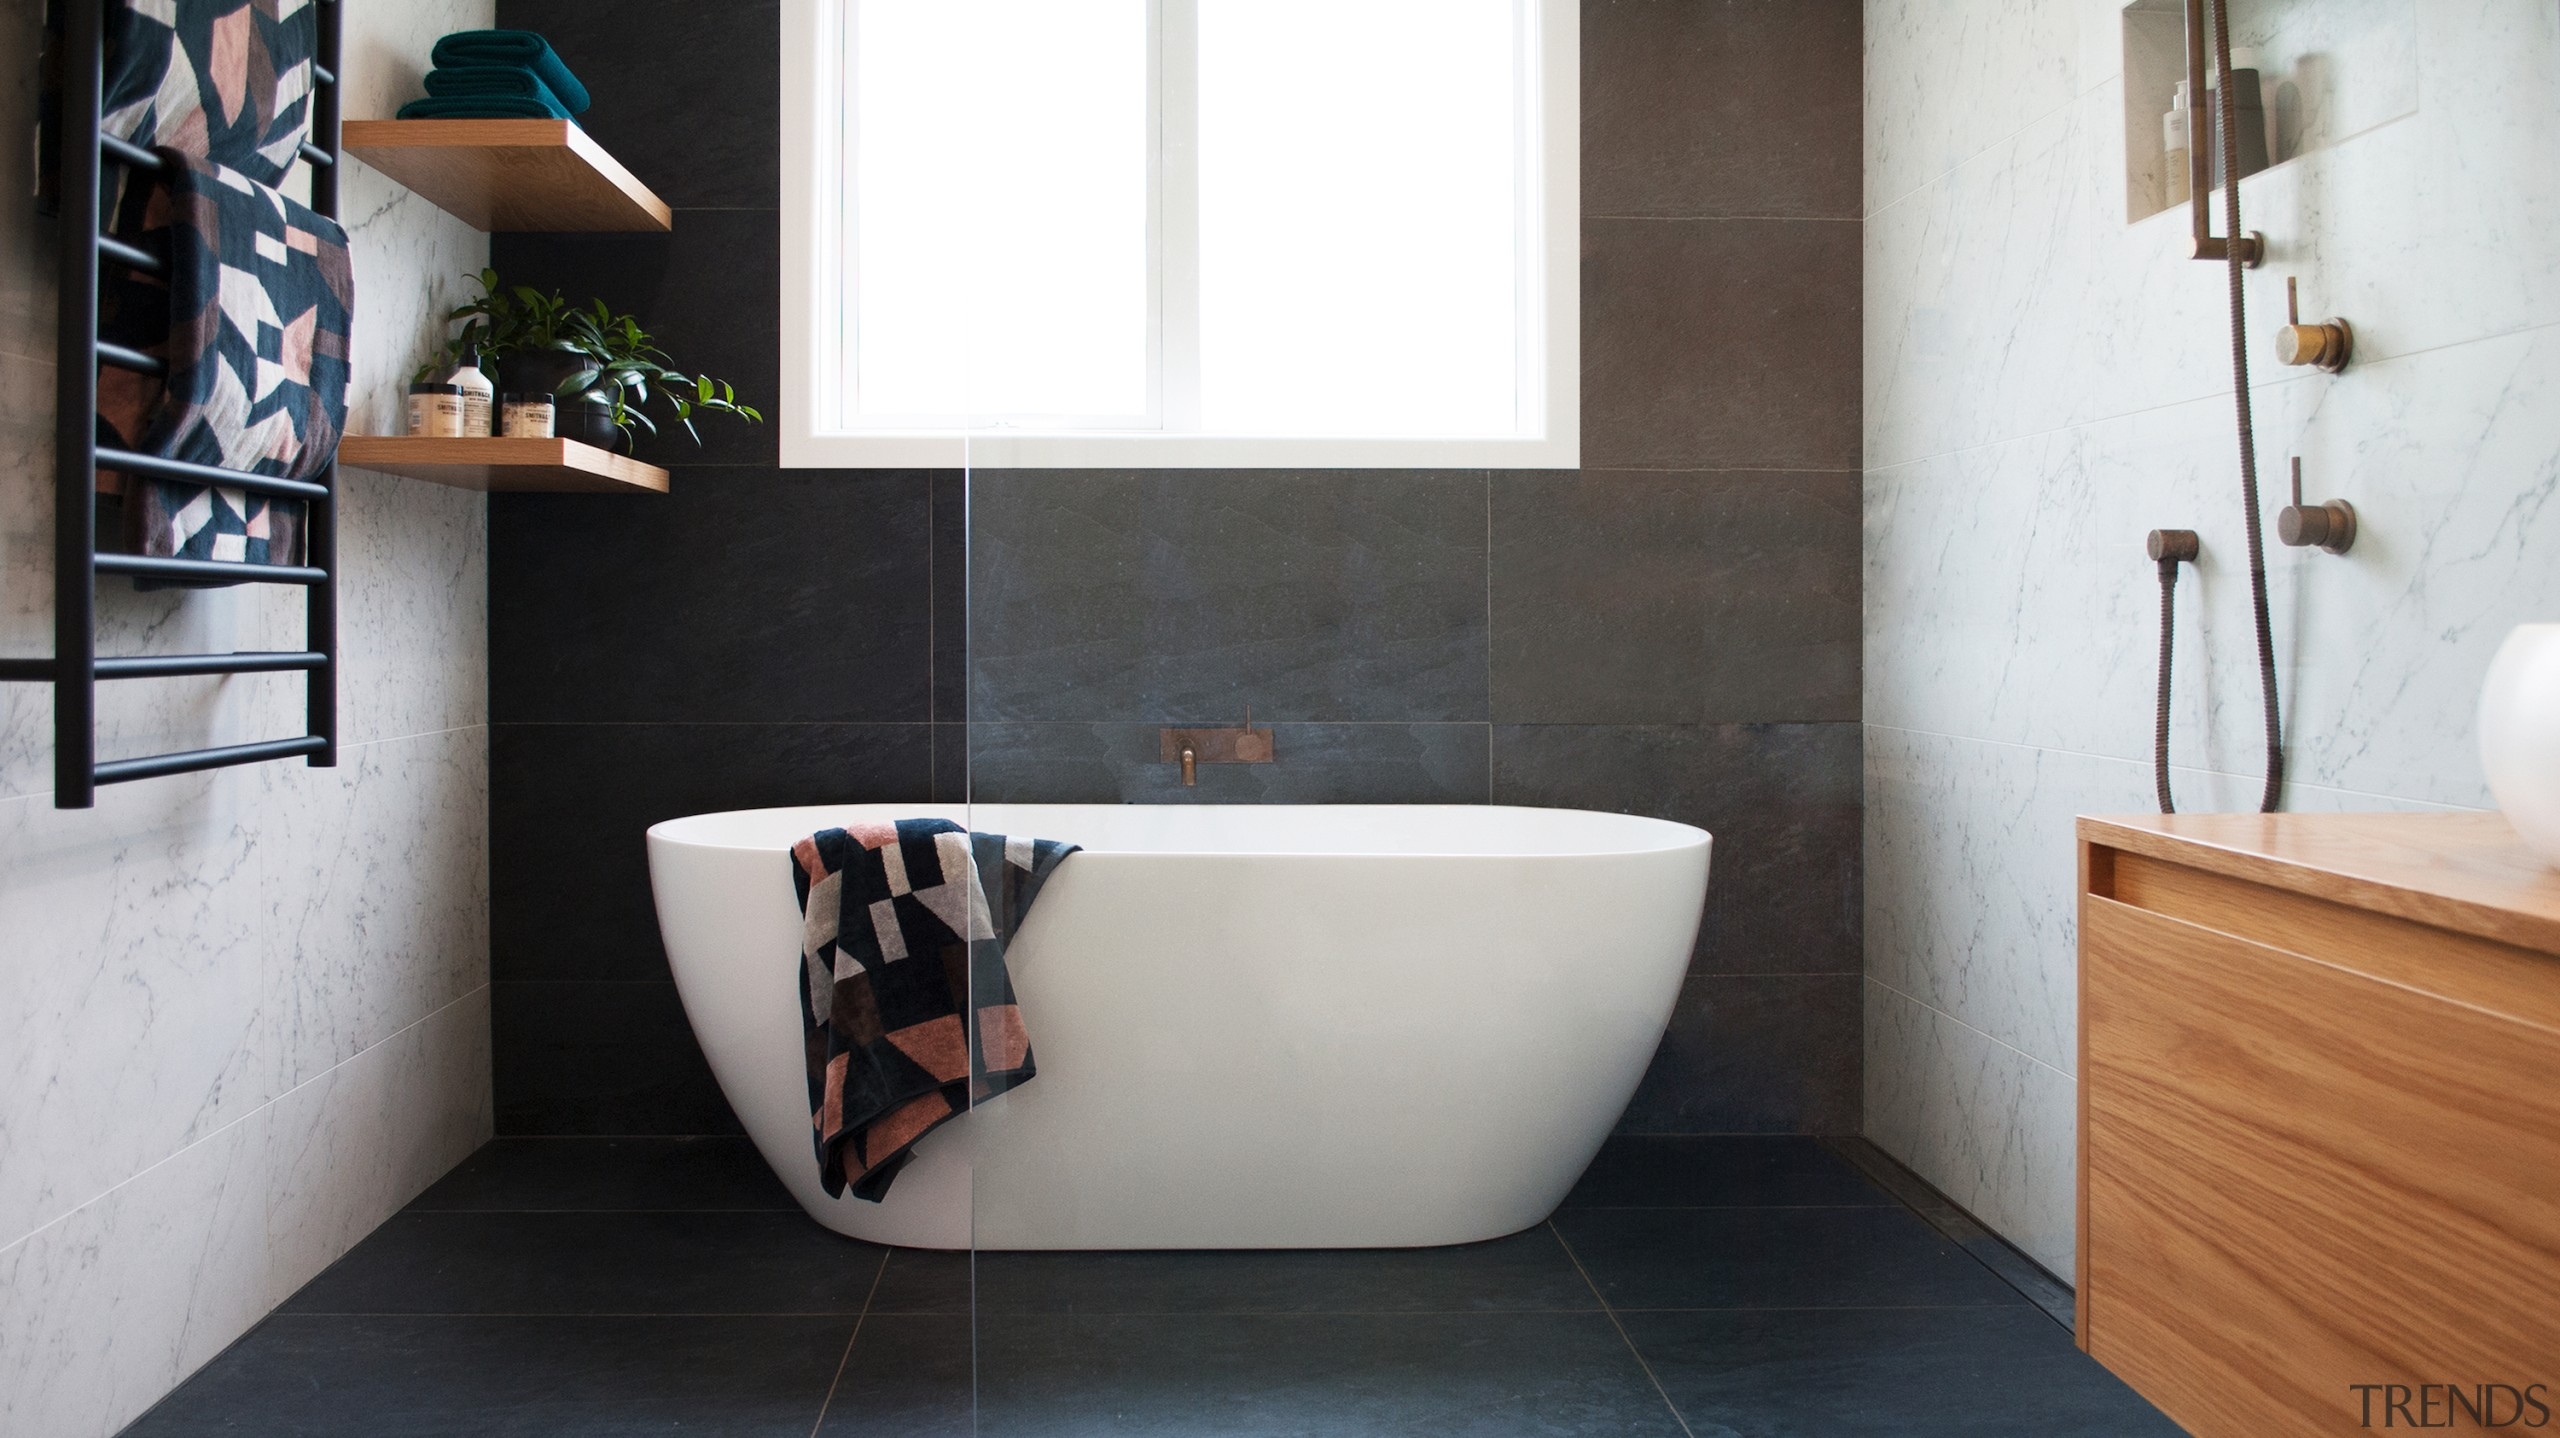 Design Haus – Highly Commended – 2019 TIDA architecture, bathroom, bathtub, black, black-and-white, building, ceramic, floor, flooring, furniture, home, house, interior design, material property, plumbing fixture, property, room, tap, tile, wall, white, black